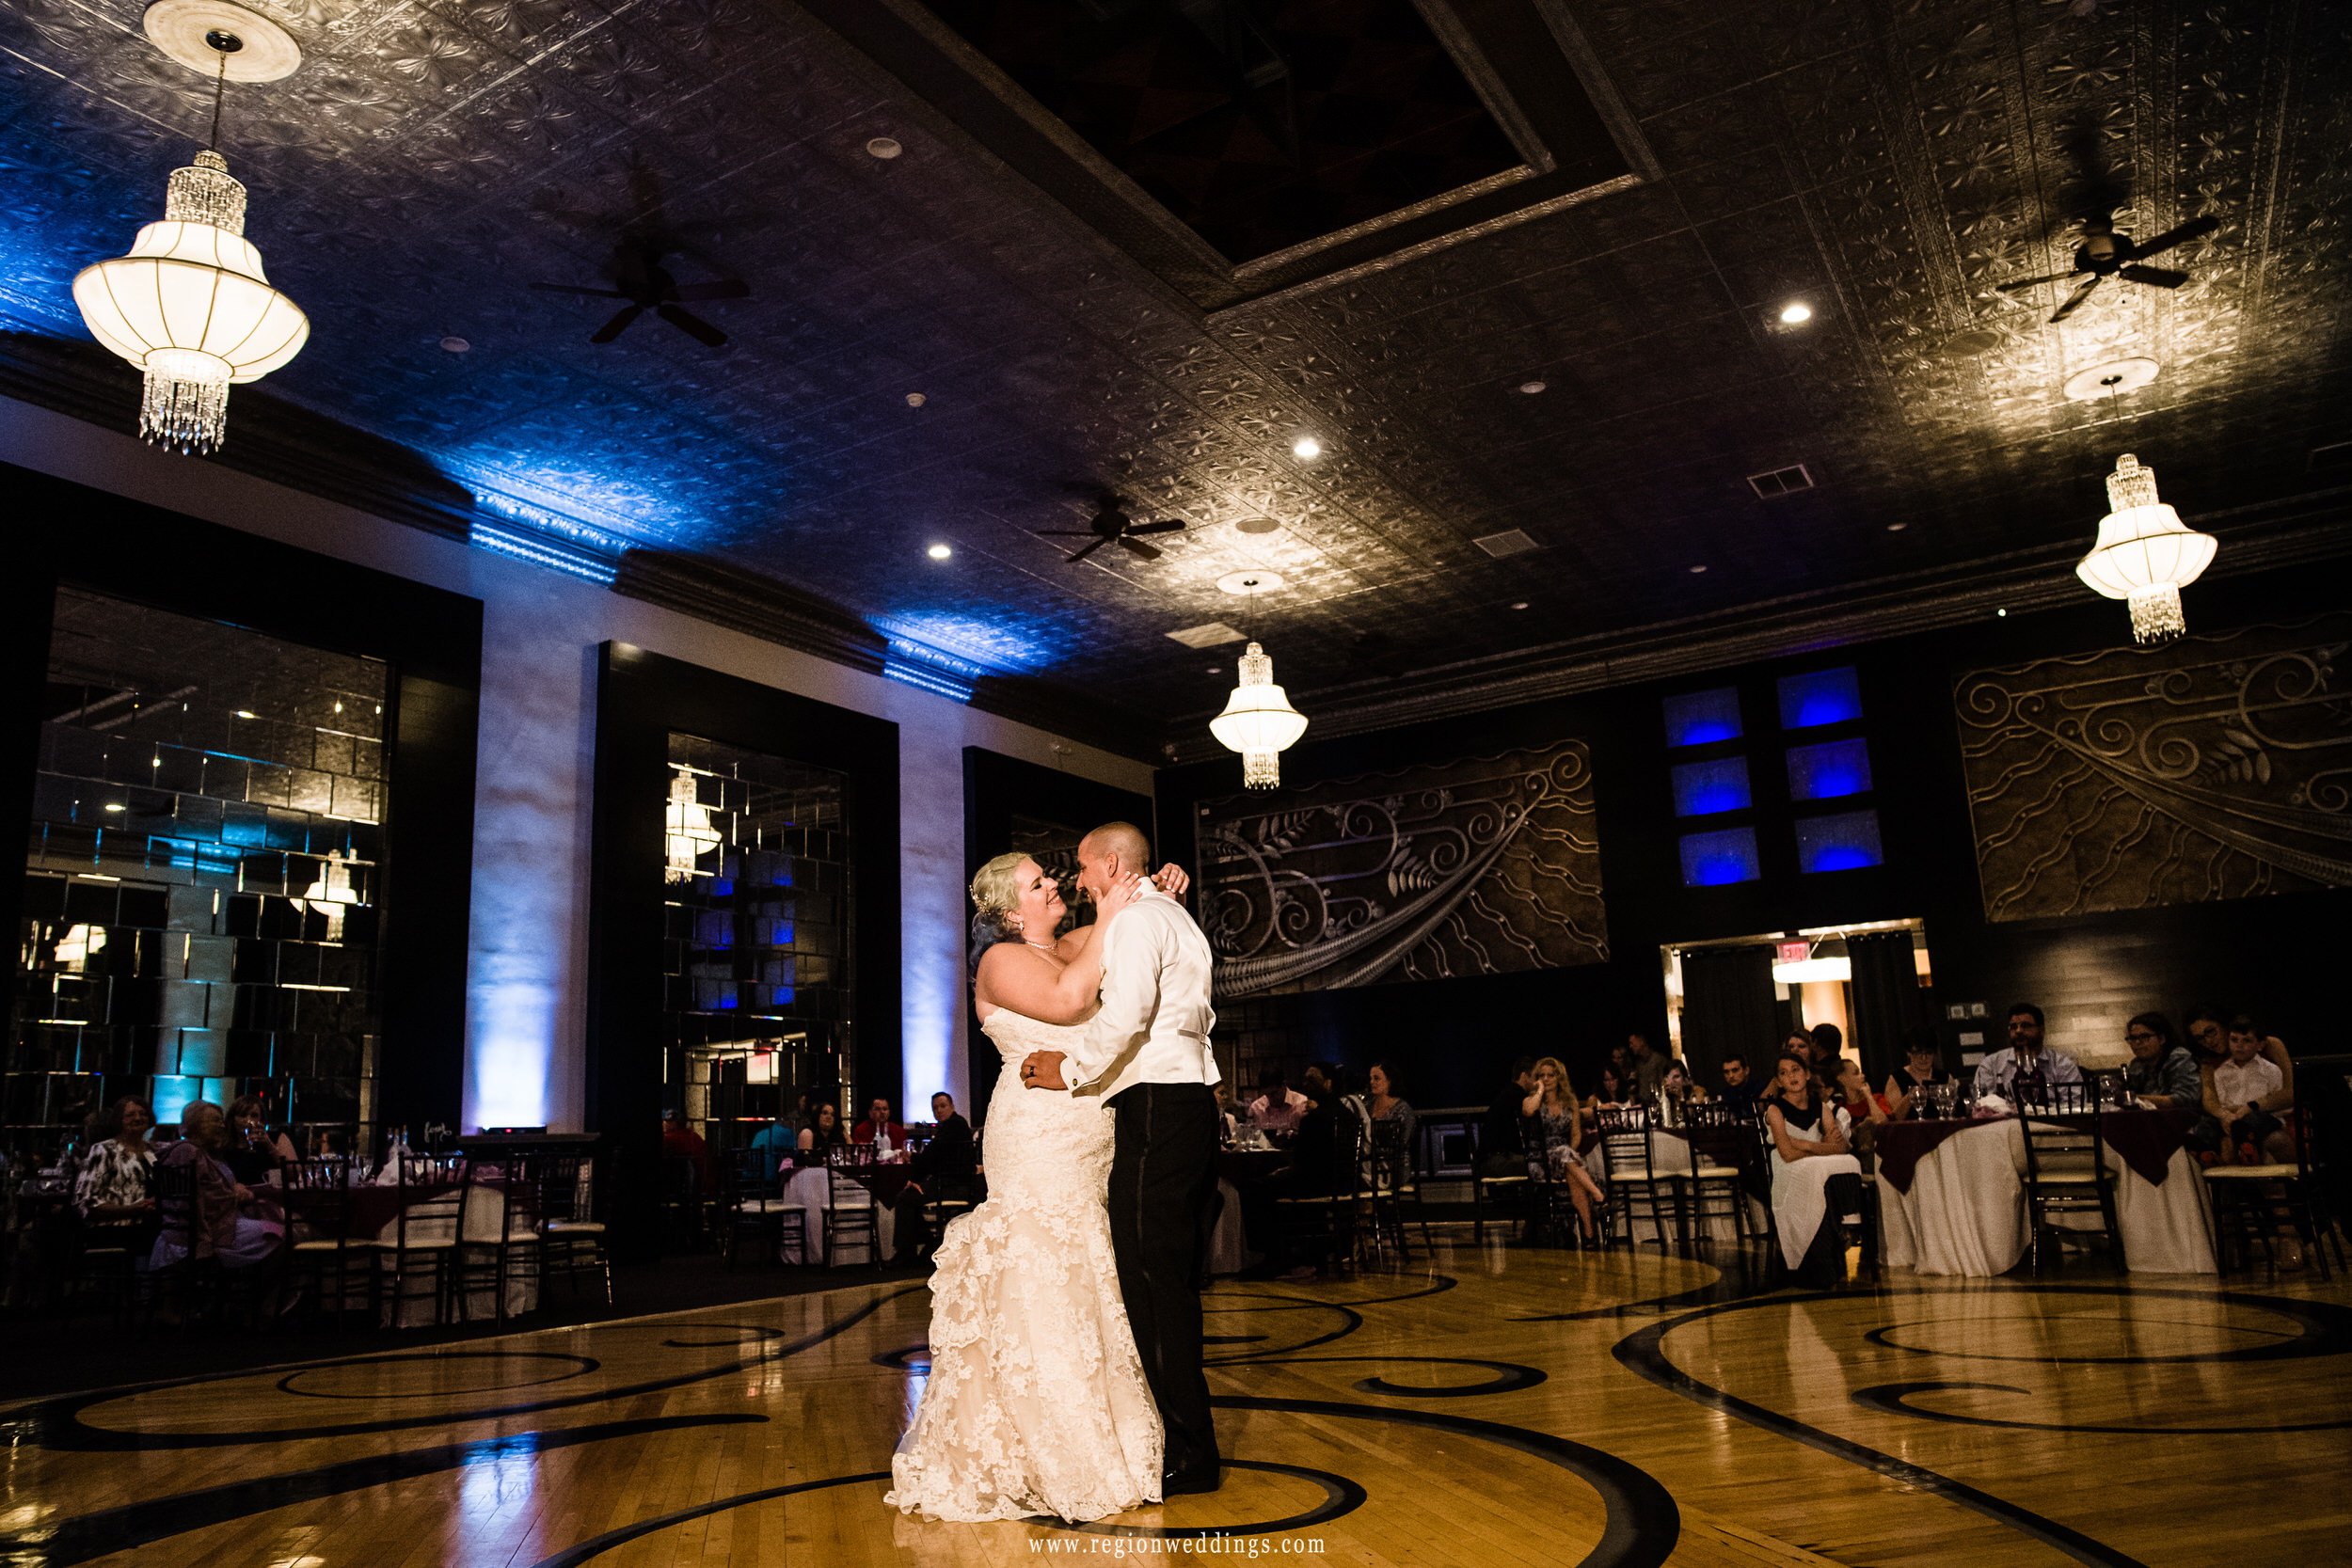 First dance on the floor of The Allure ballroom.